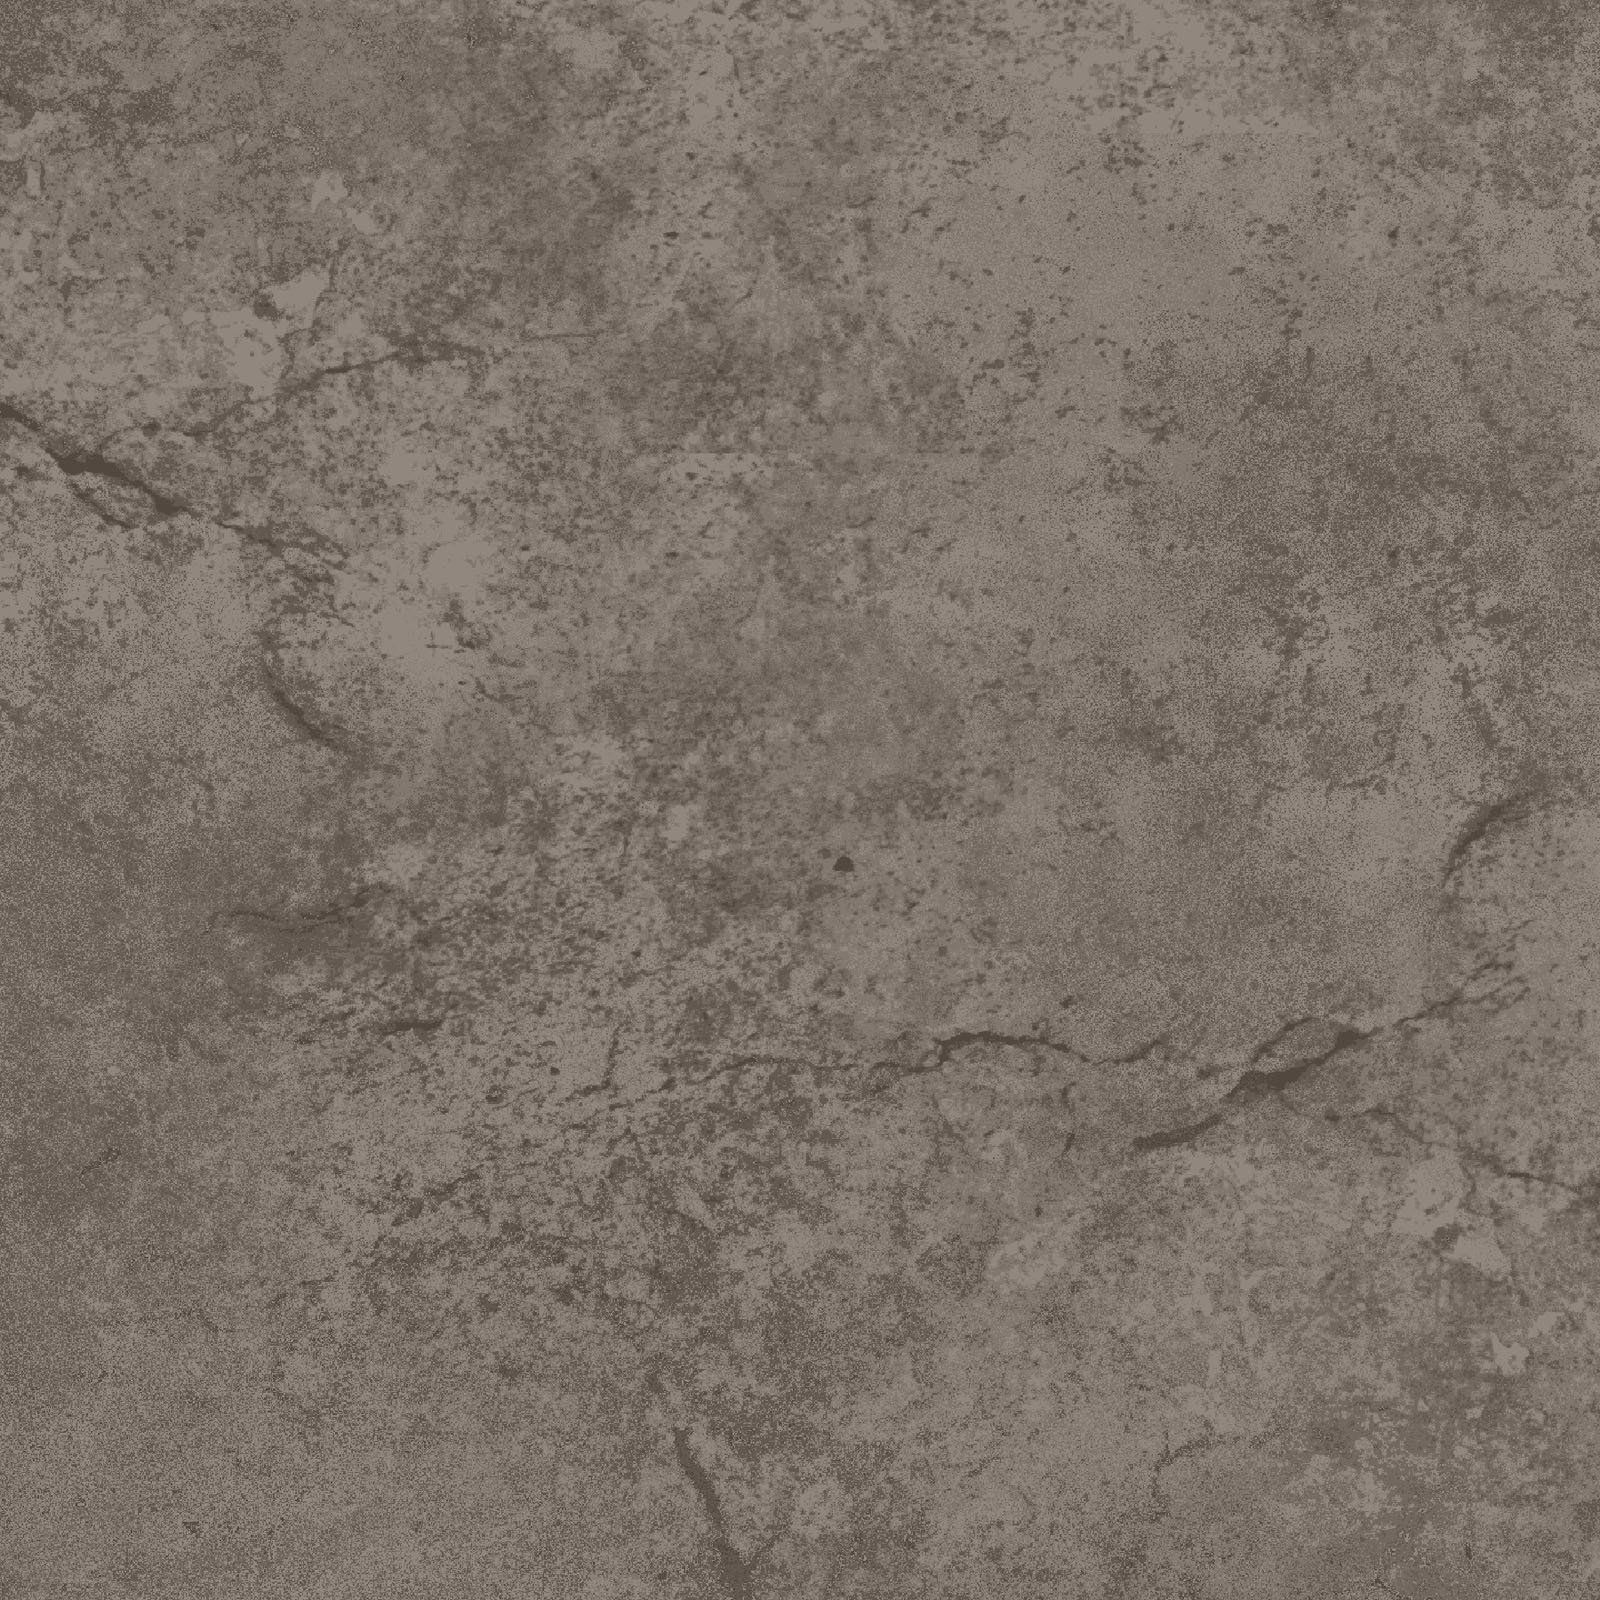 Marble - Sweet Taupe<br/>Maywood Studio 102-KA